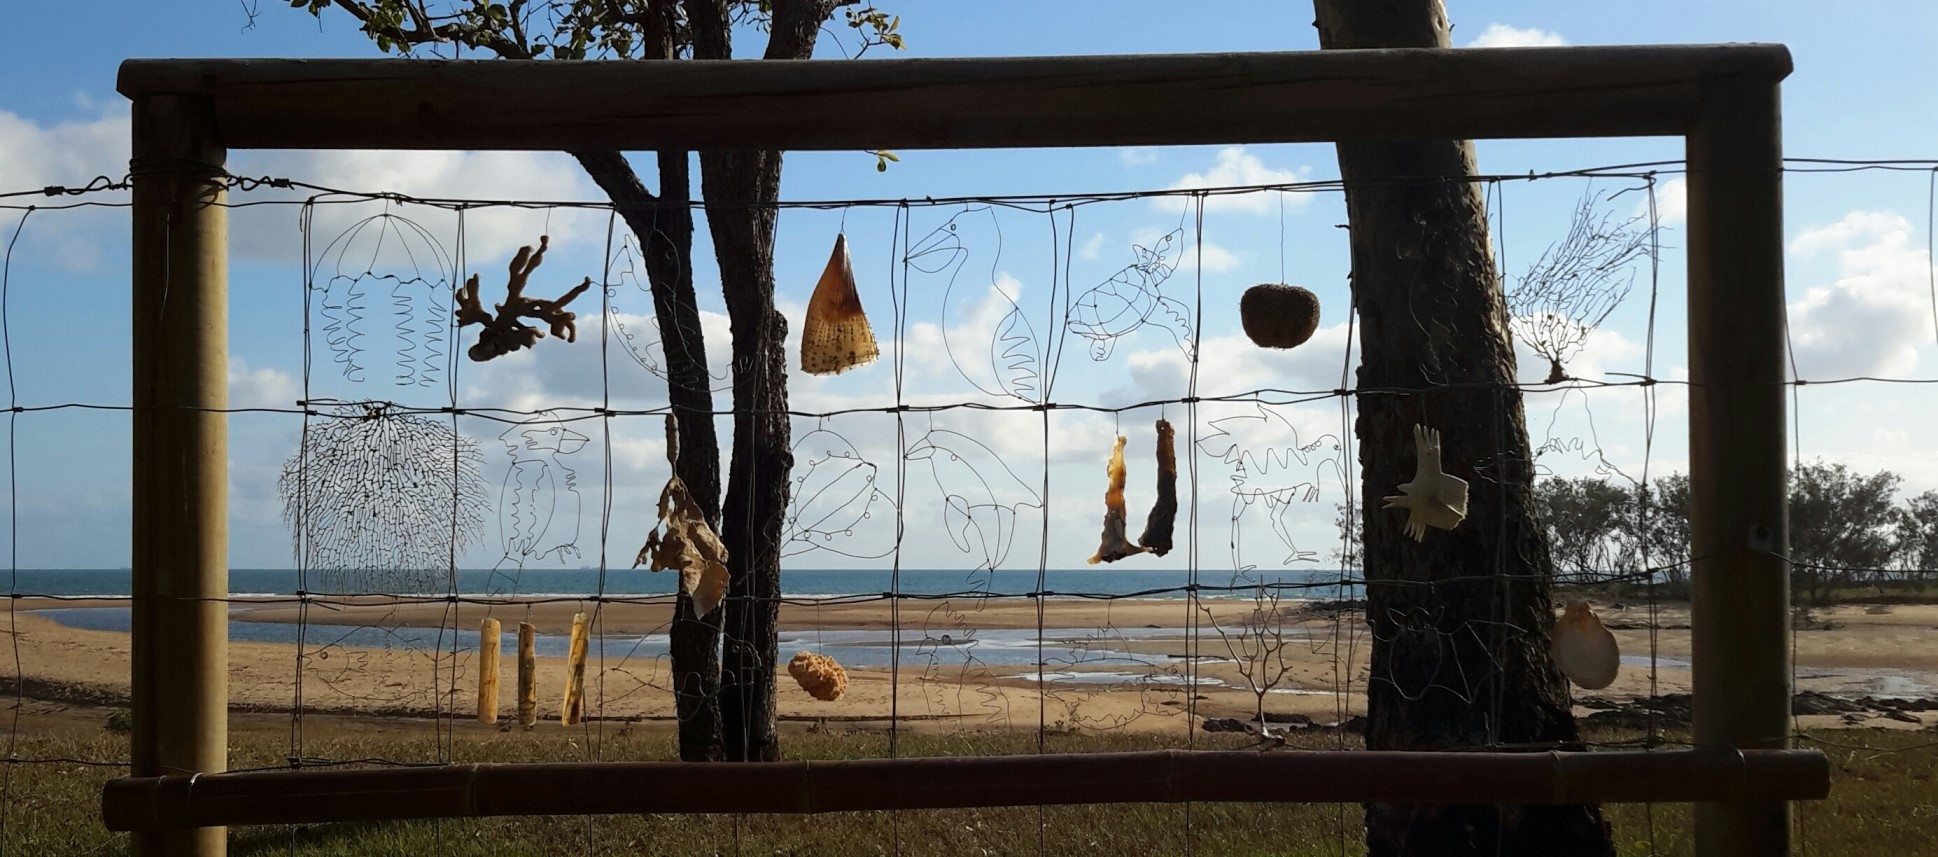 Beach Fence Quilt (2016) by Rosemary Anderson, Millennium Esplanade Parklands, Tannum Sands (Image: courtesy of the artist)